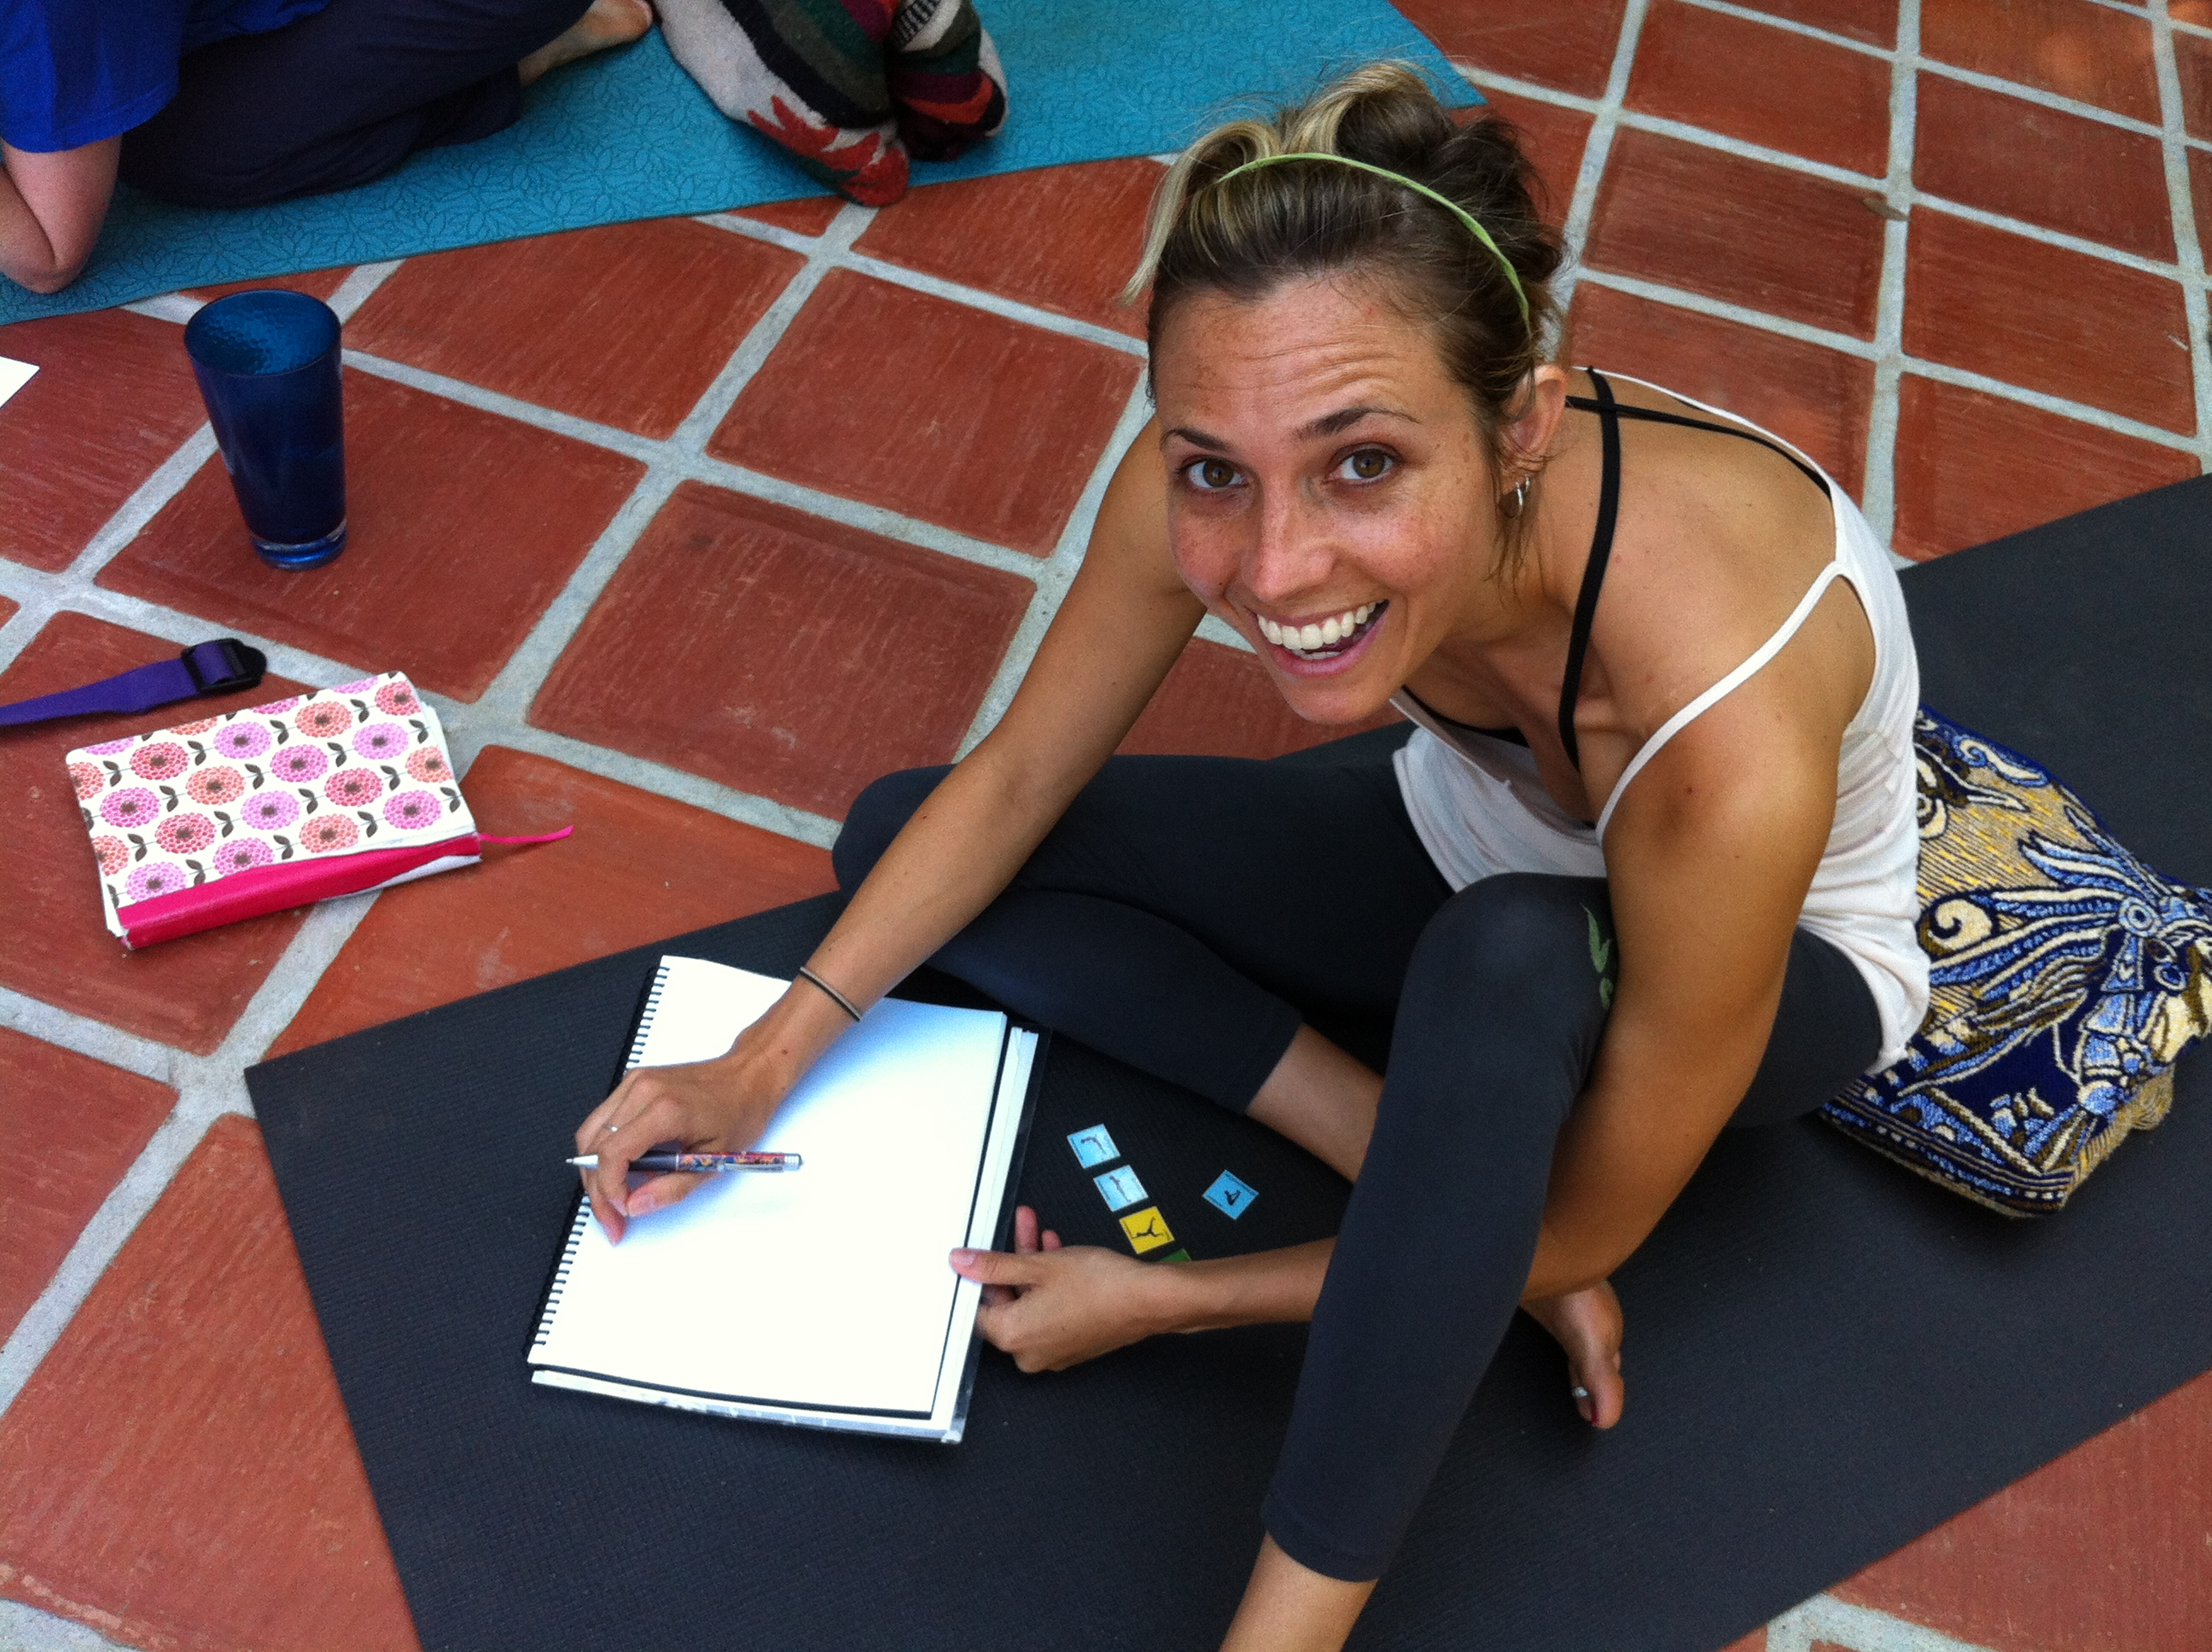 Yoga teacher training 100 hours